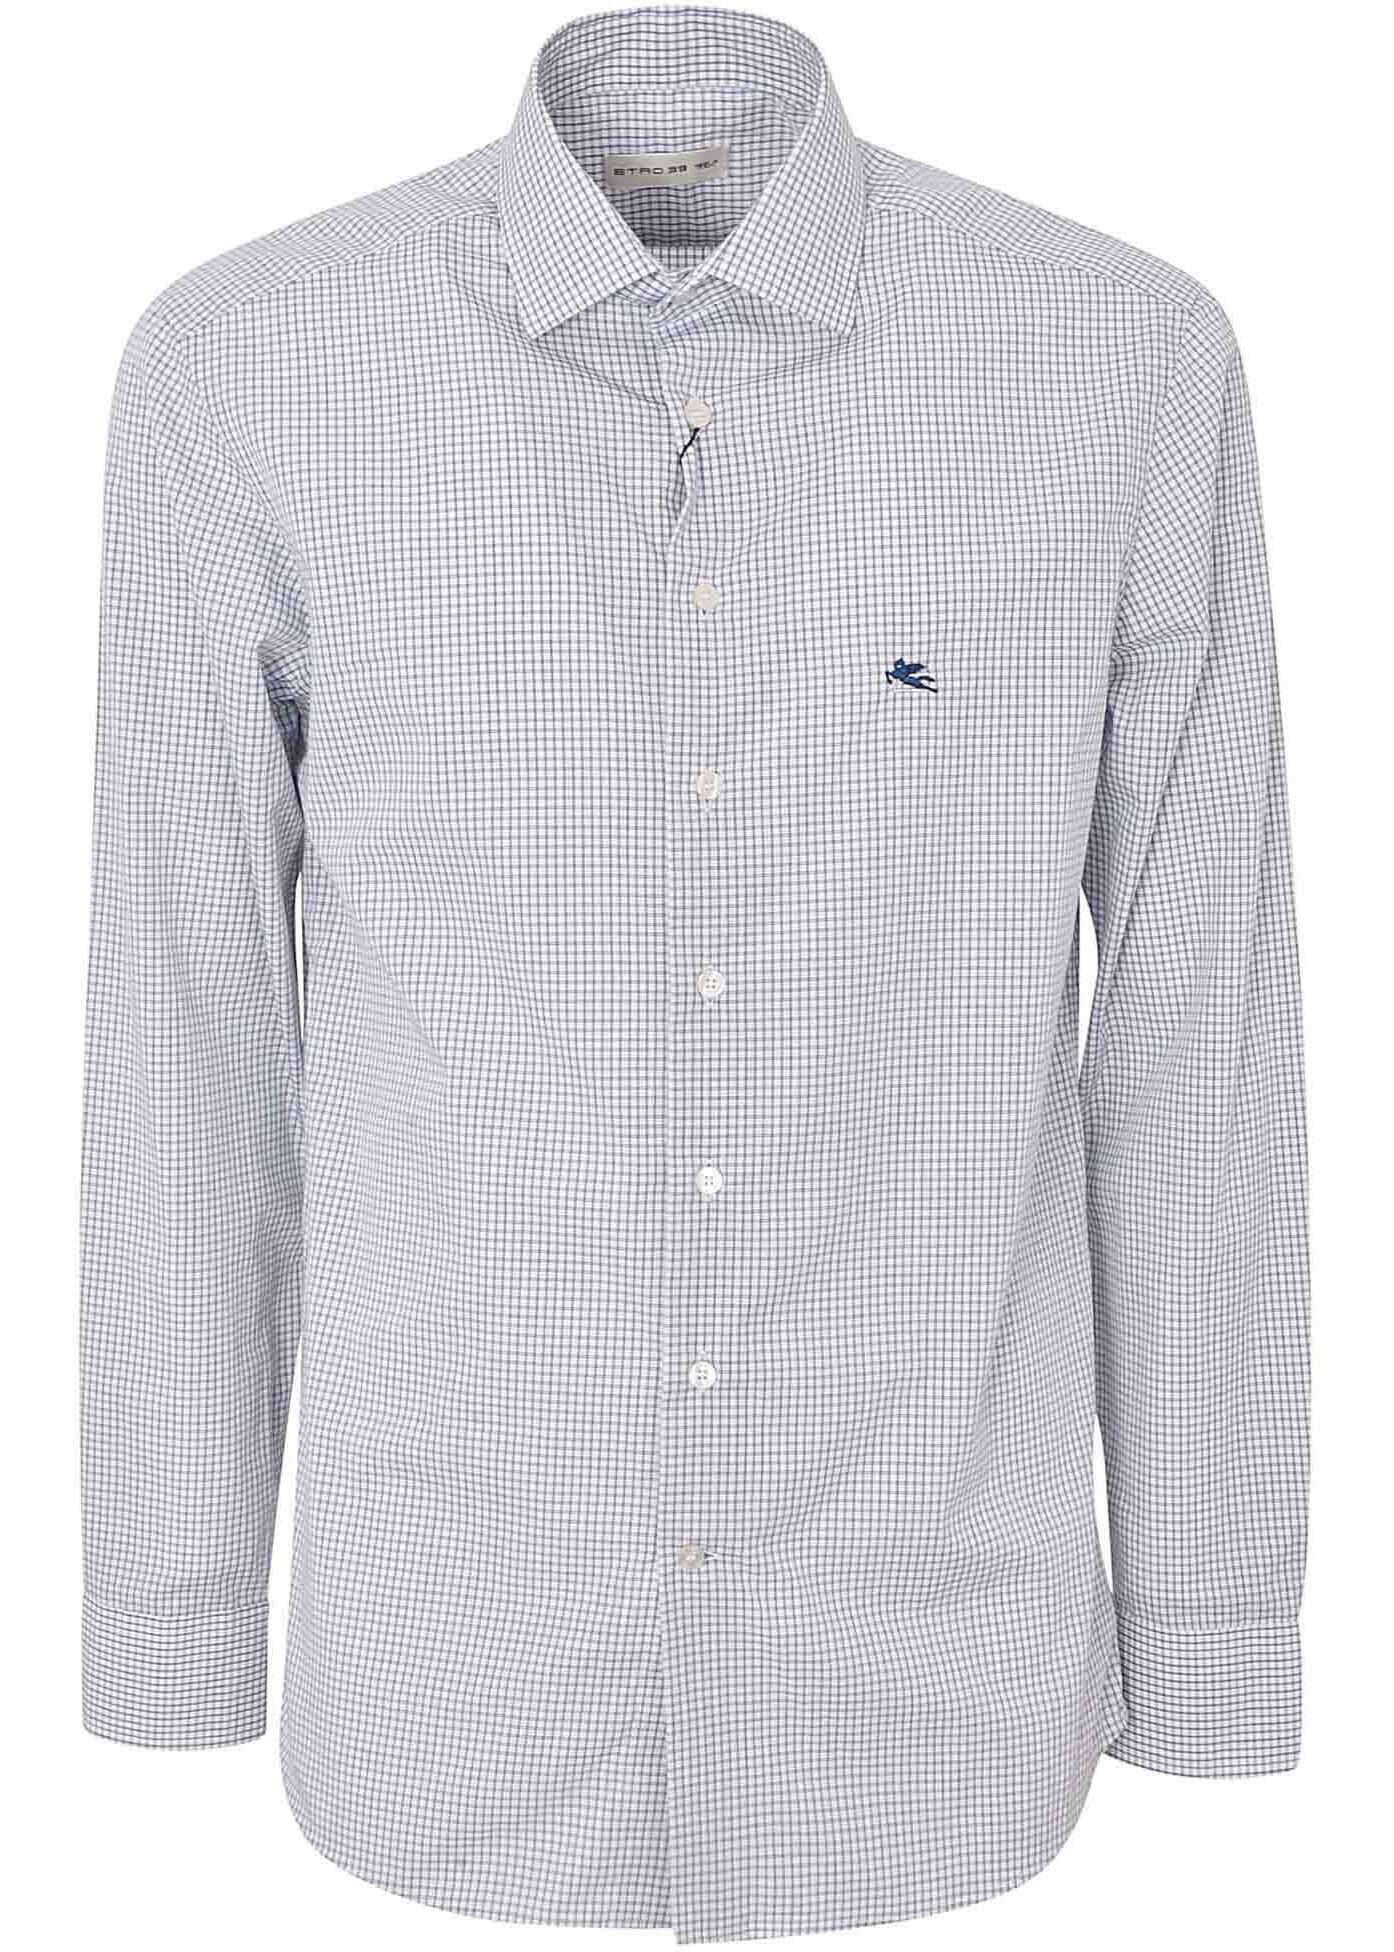 ETRO Checked Shirt In White And Blue White imagine